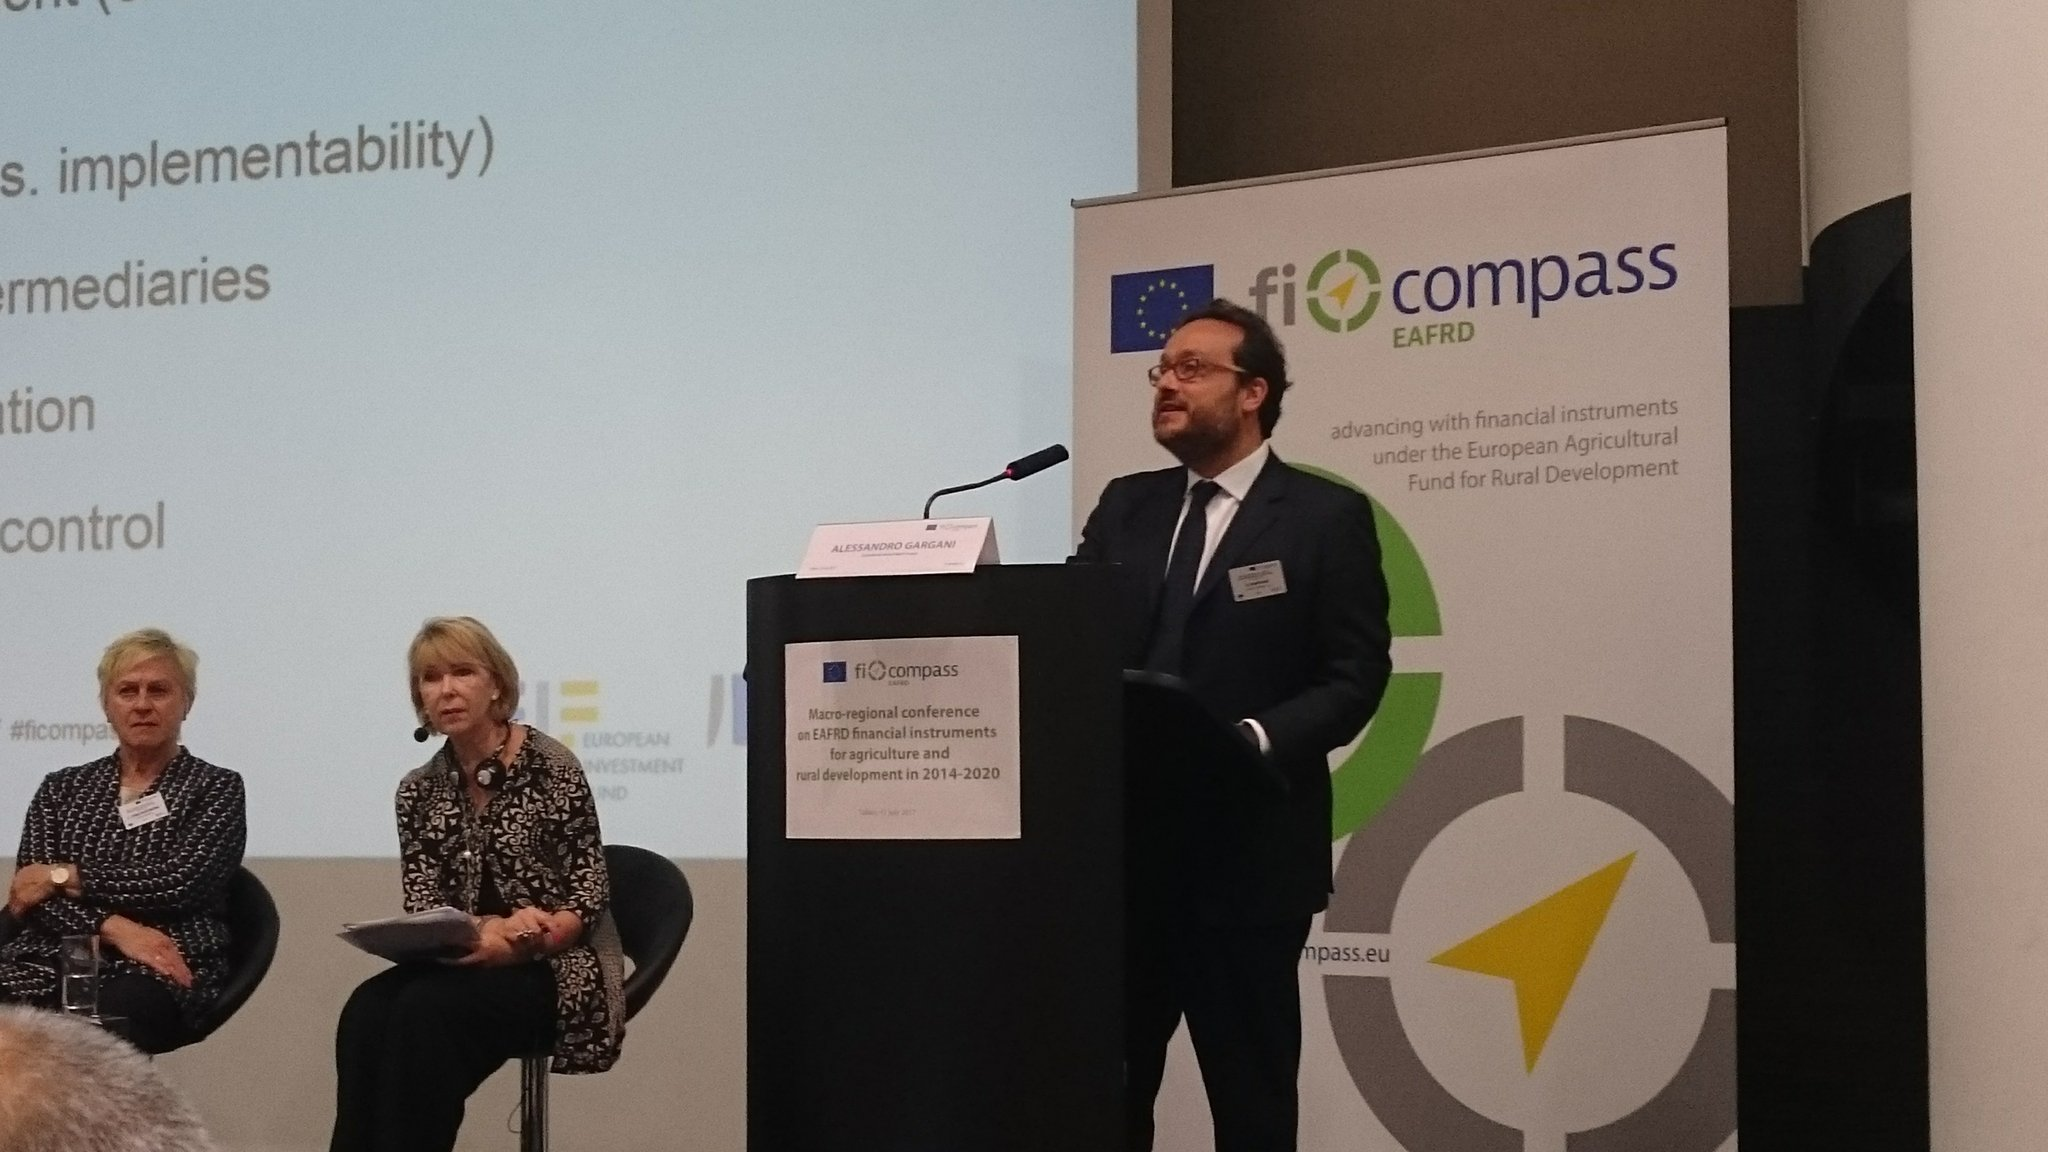 European Investment Fund: #financialinstruments are not an alternative to grants, they are complementing other support schemes. #ficompass https://t.co/NZmox4KSeN